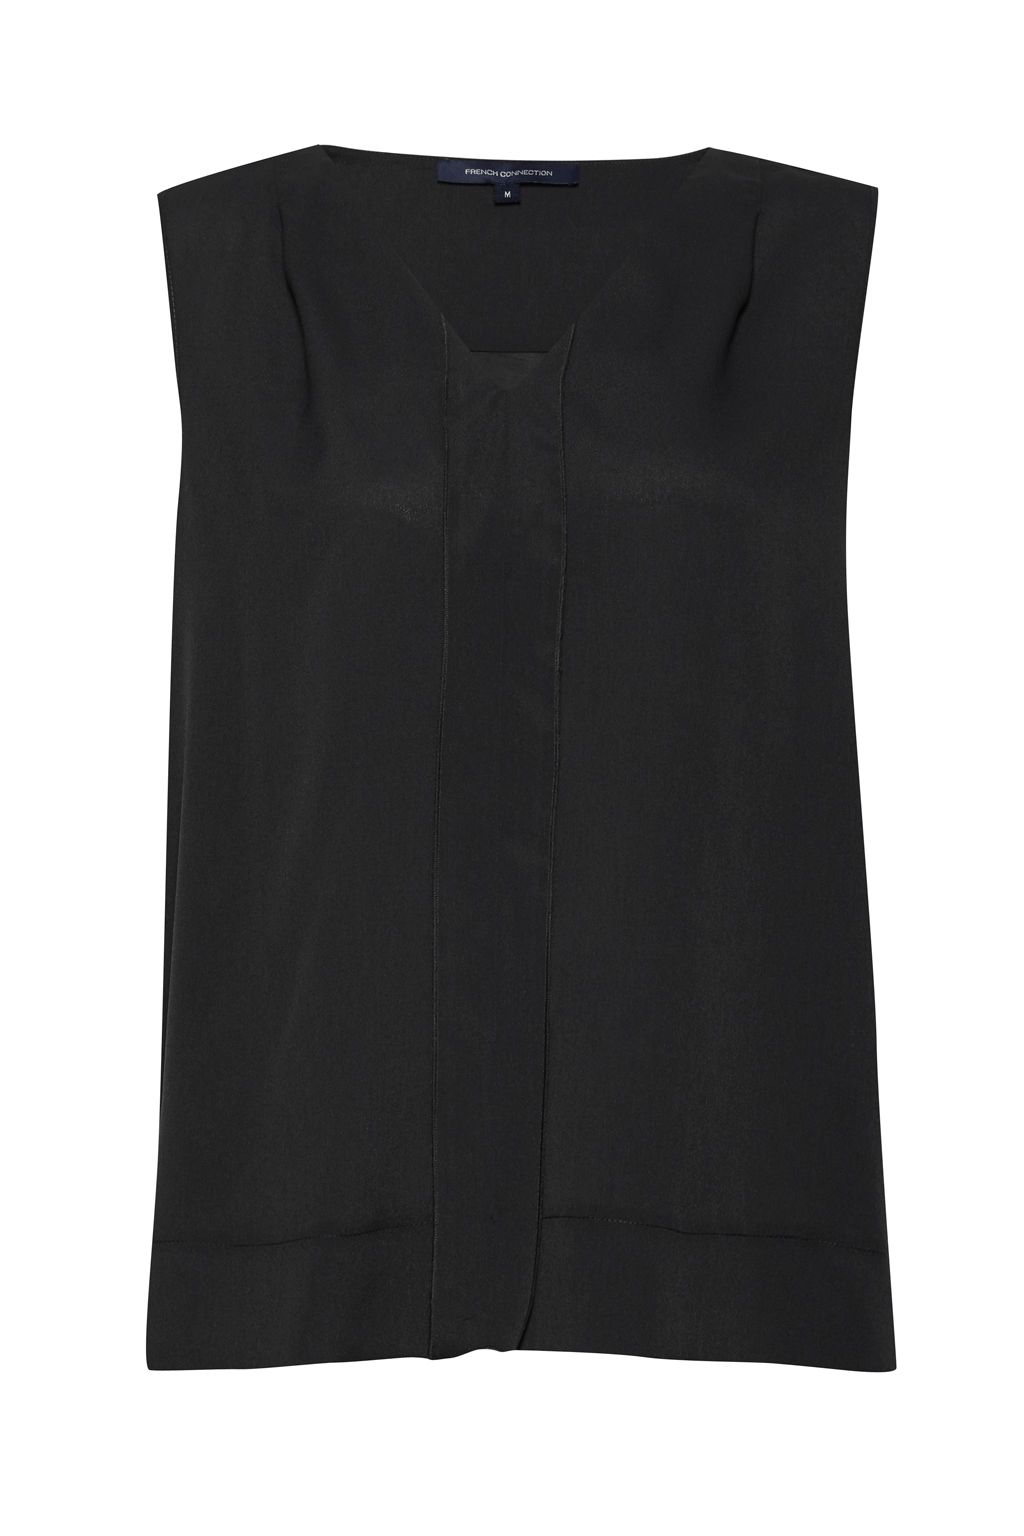 French Connection Polly Plains V Neck Top, Charcoal